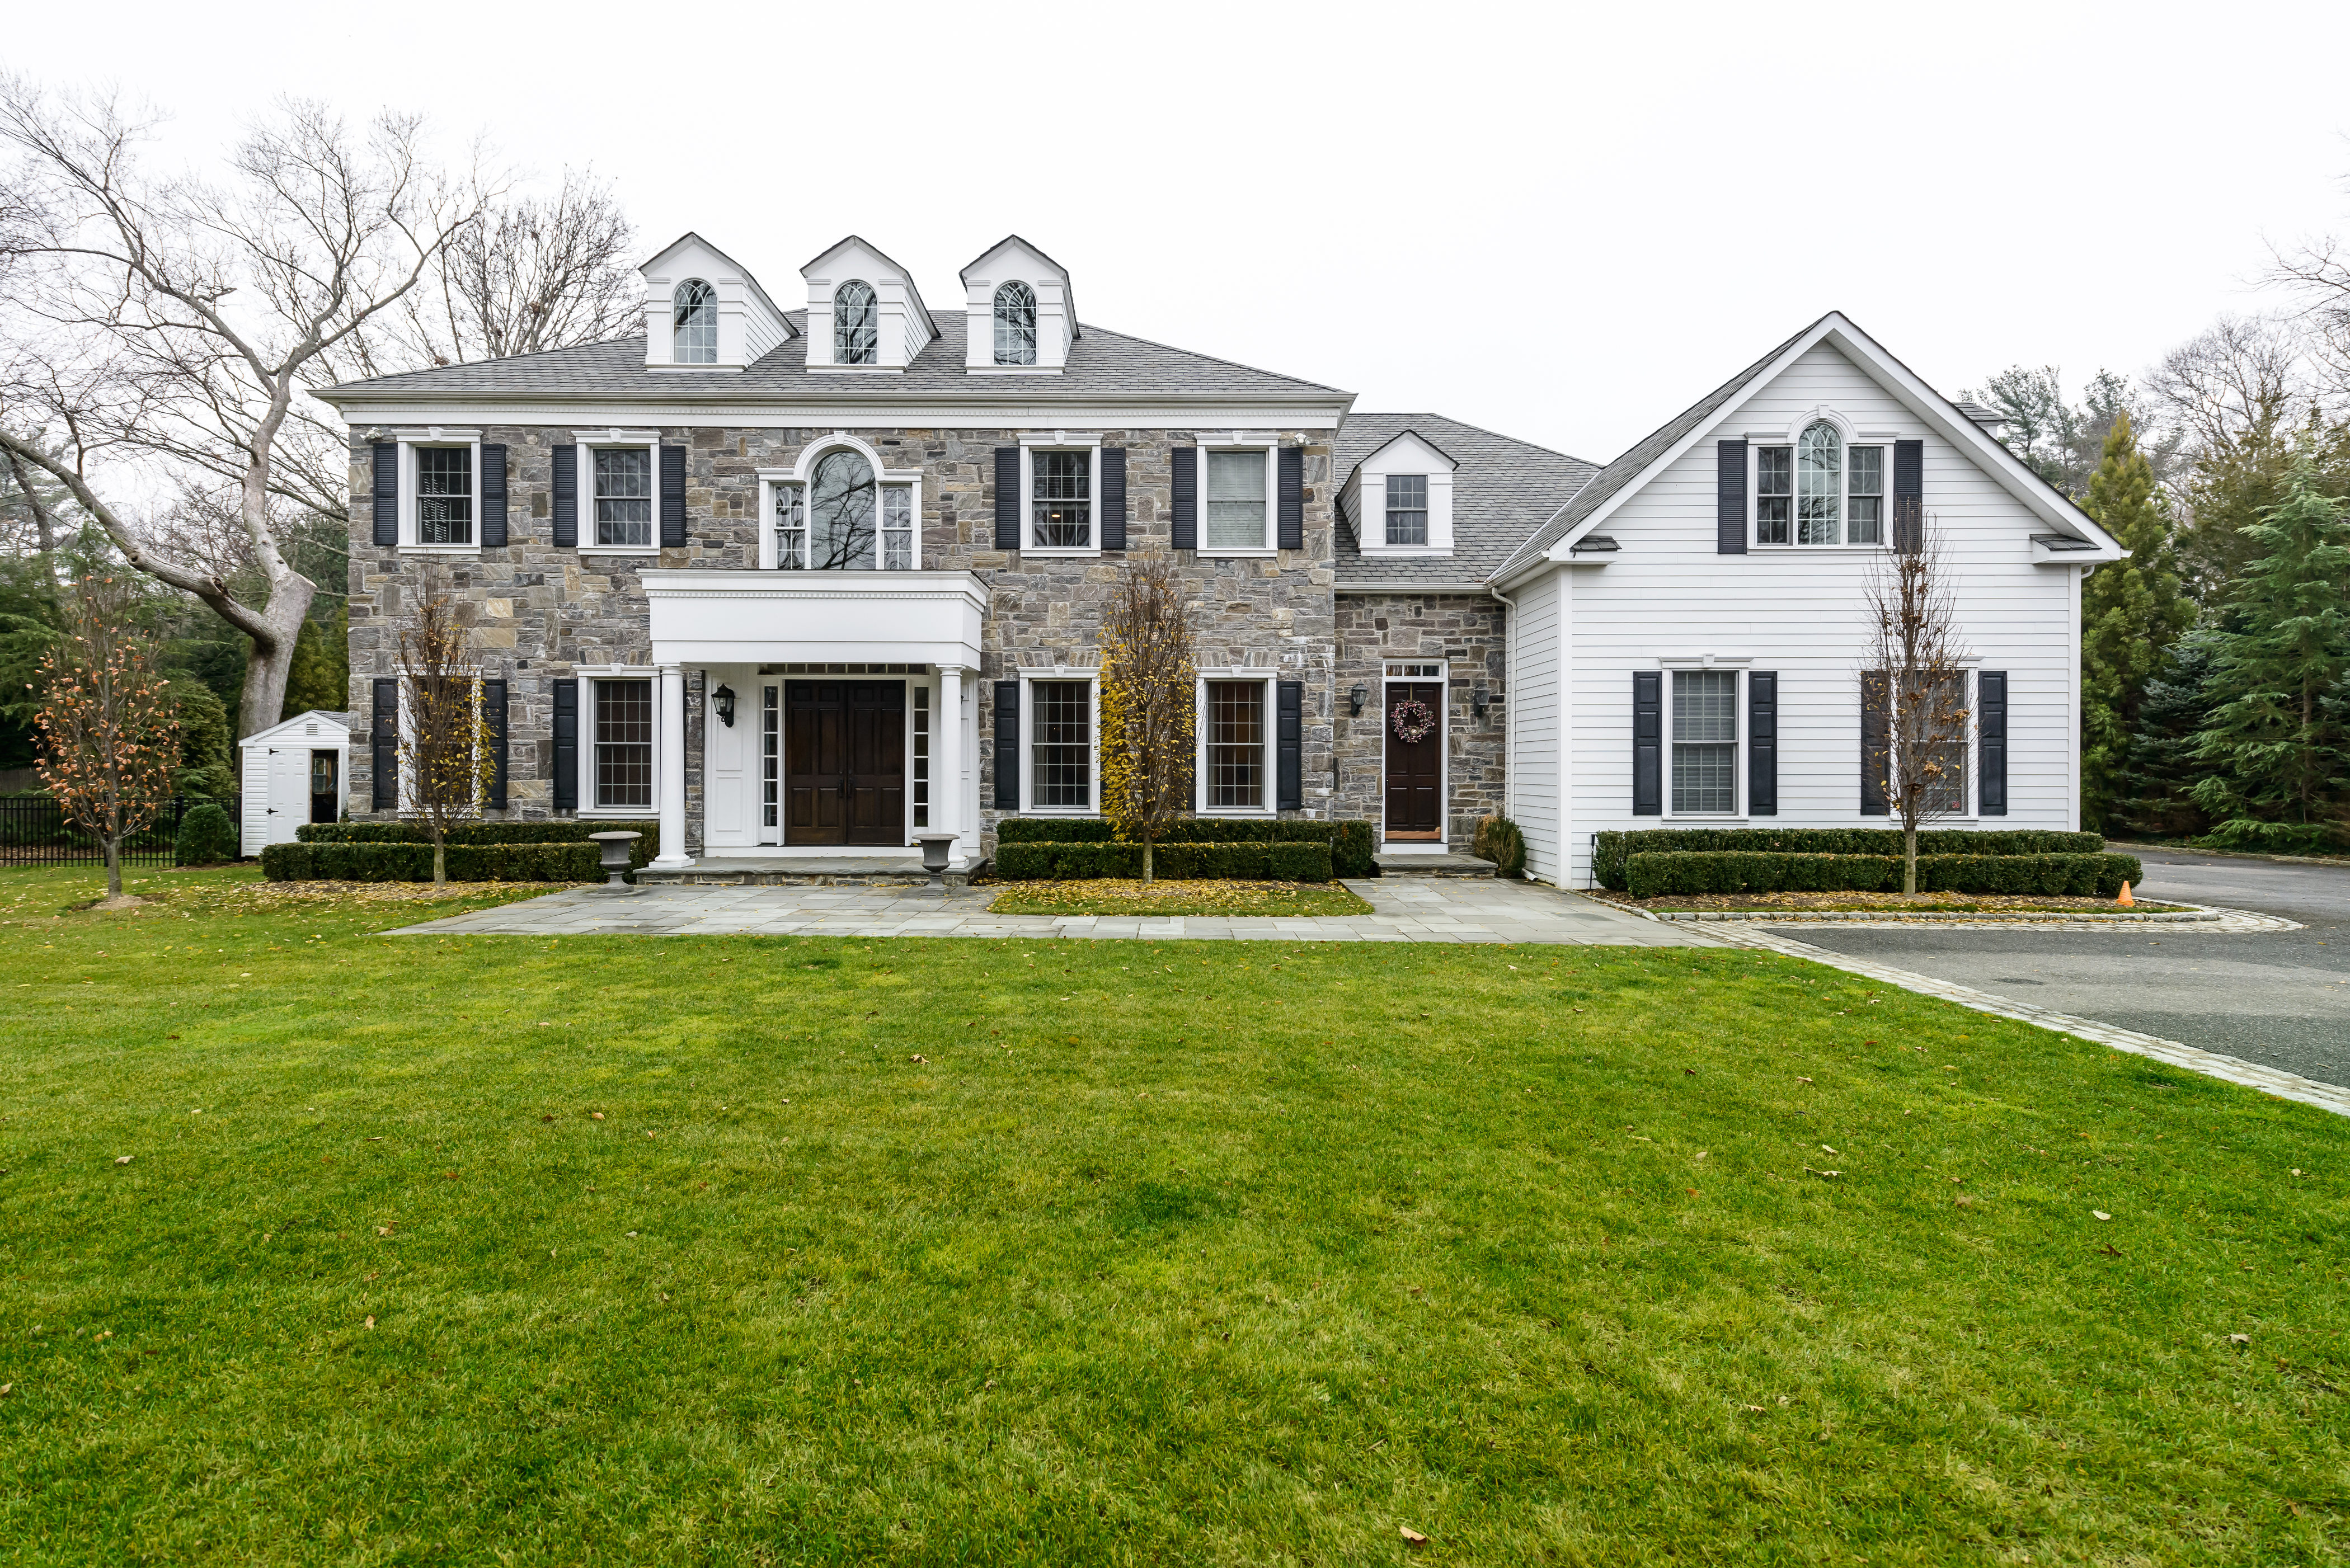 Single Family Home for Sale at Colonial 58 Warner Ln Syosset, New York, 11791 United States